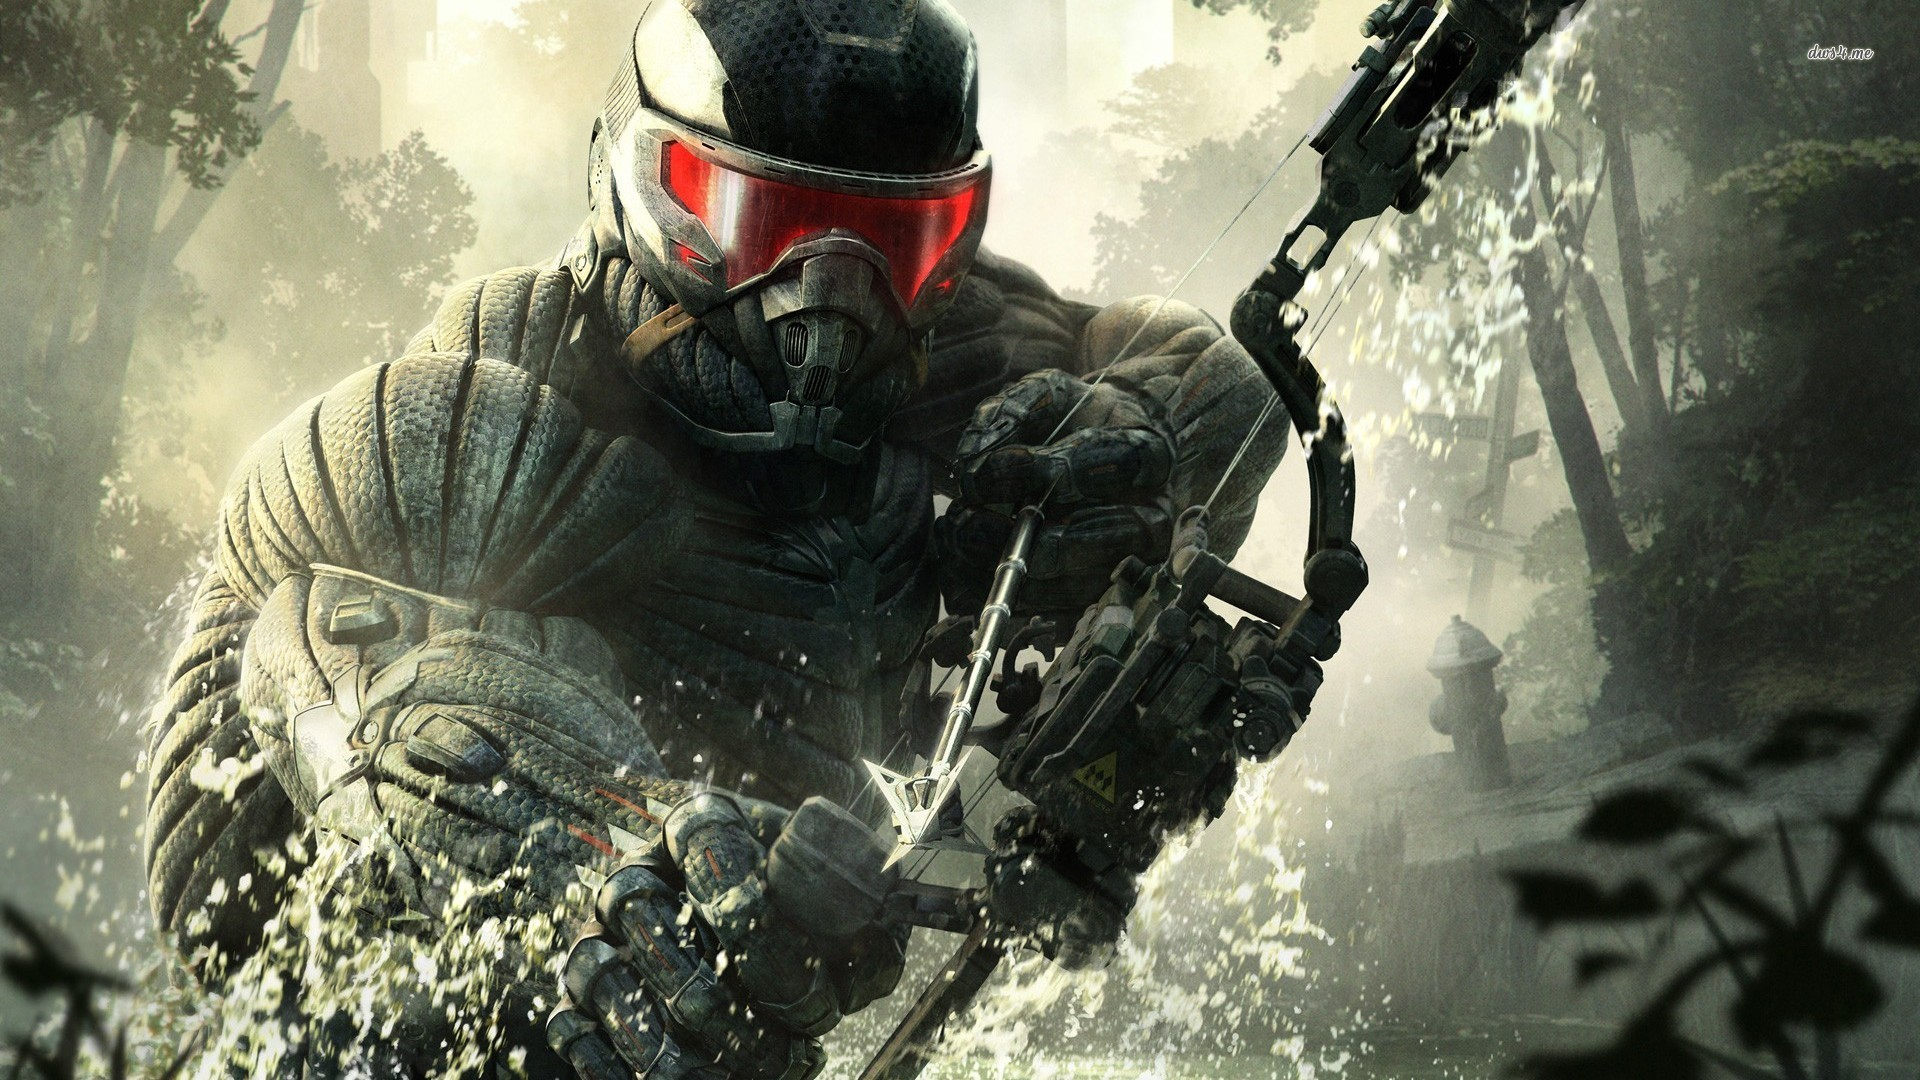 Crysis 3 Wallpaper 1920x1080